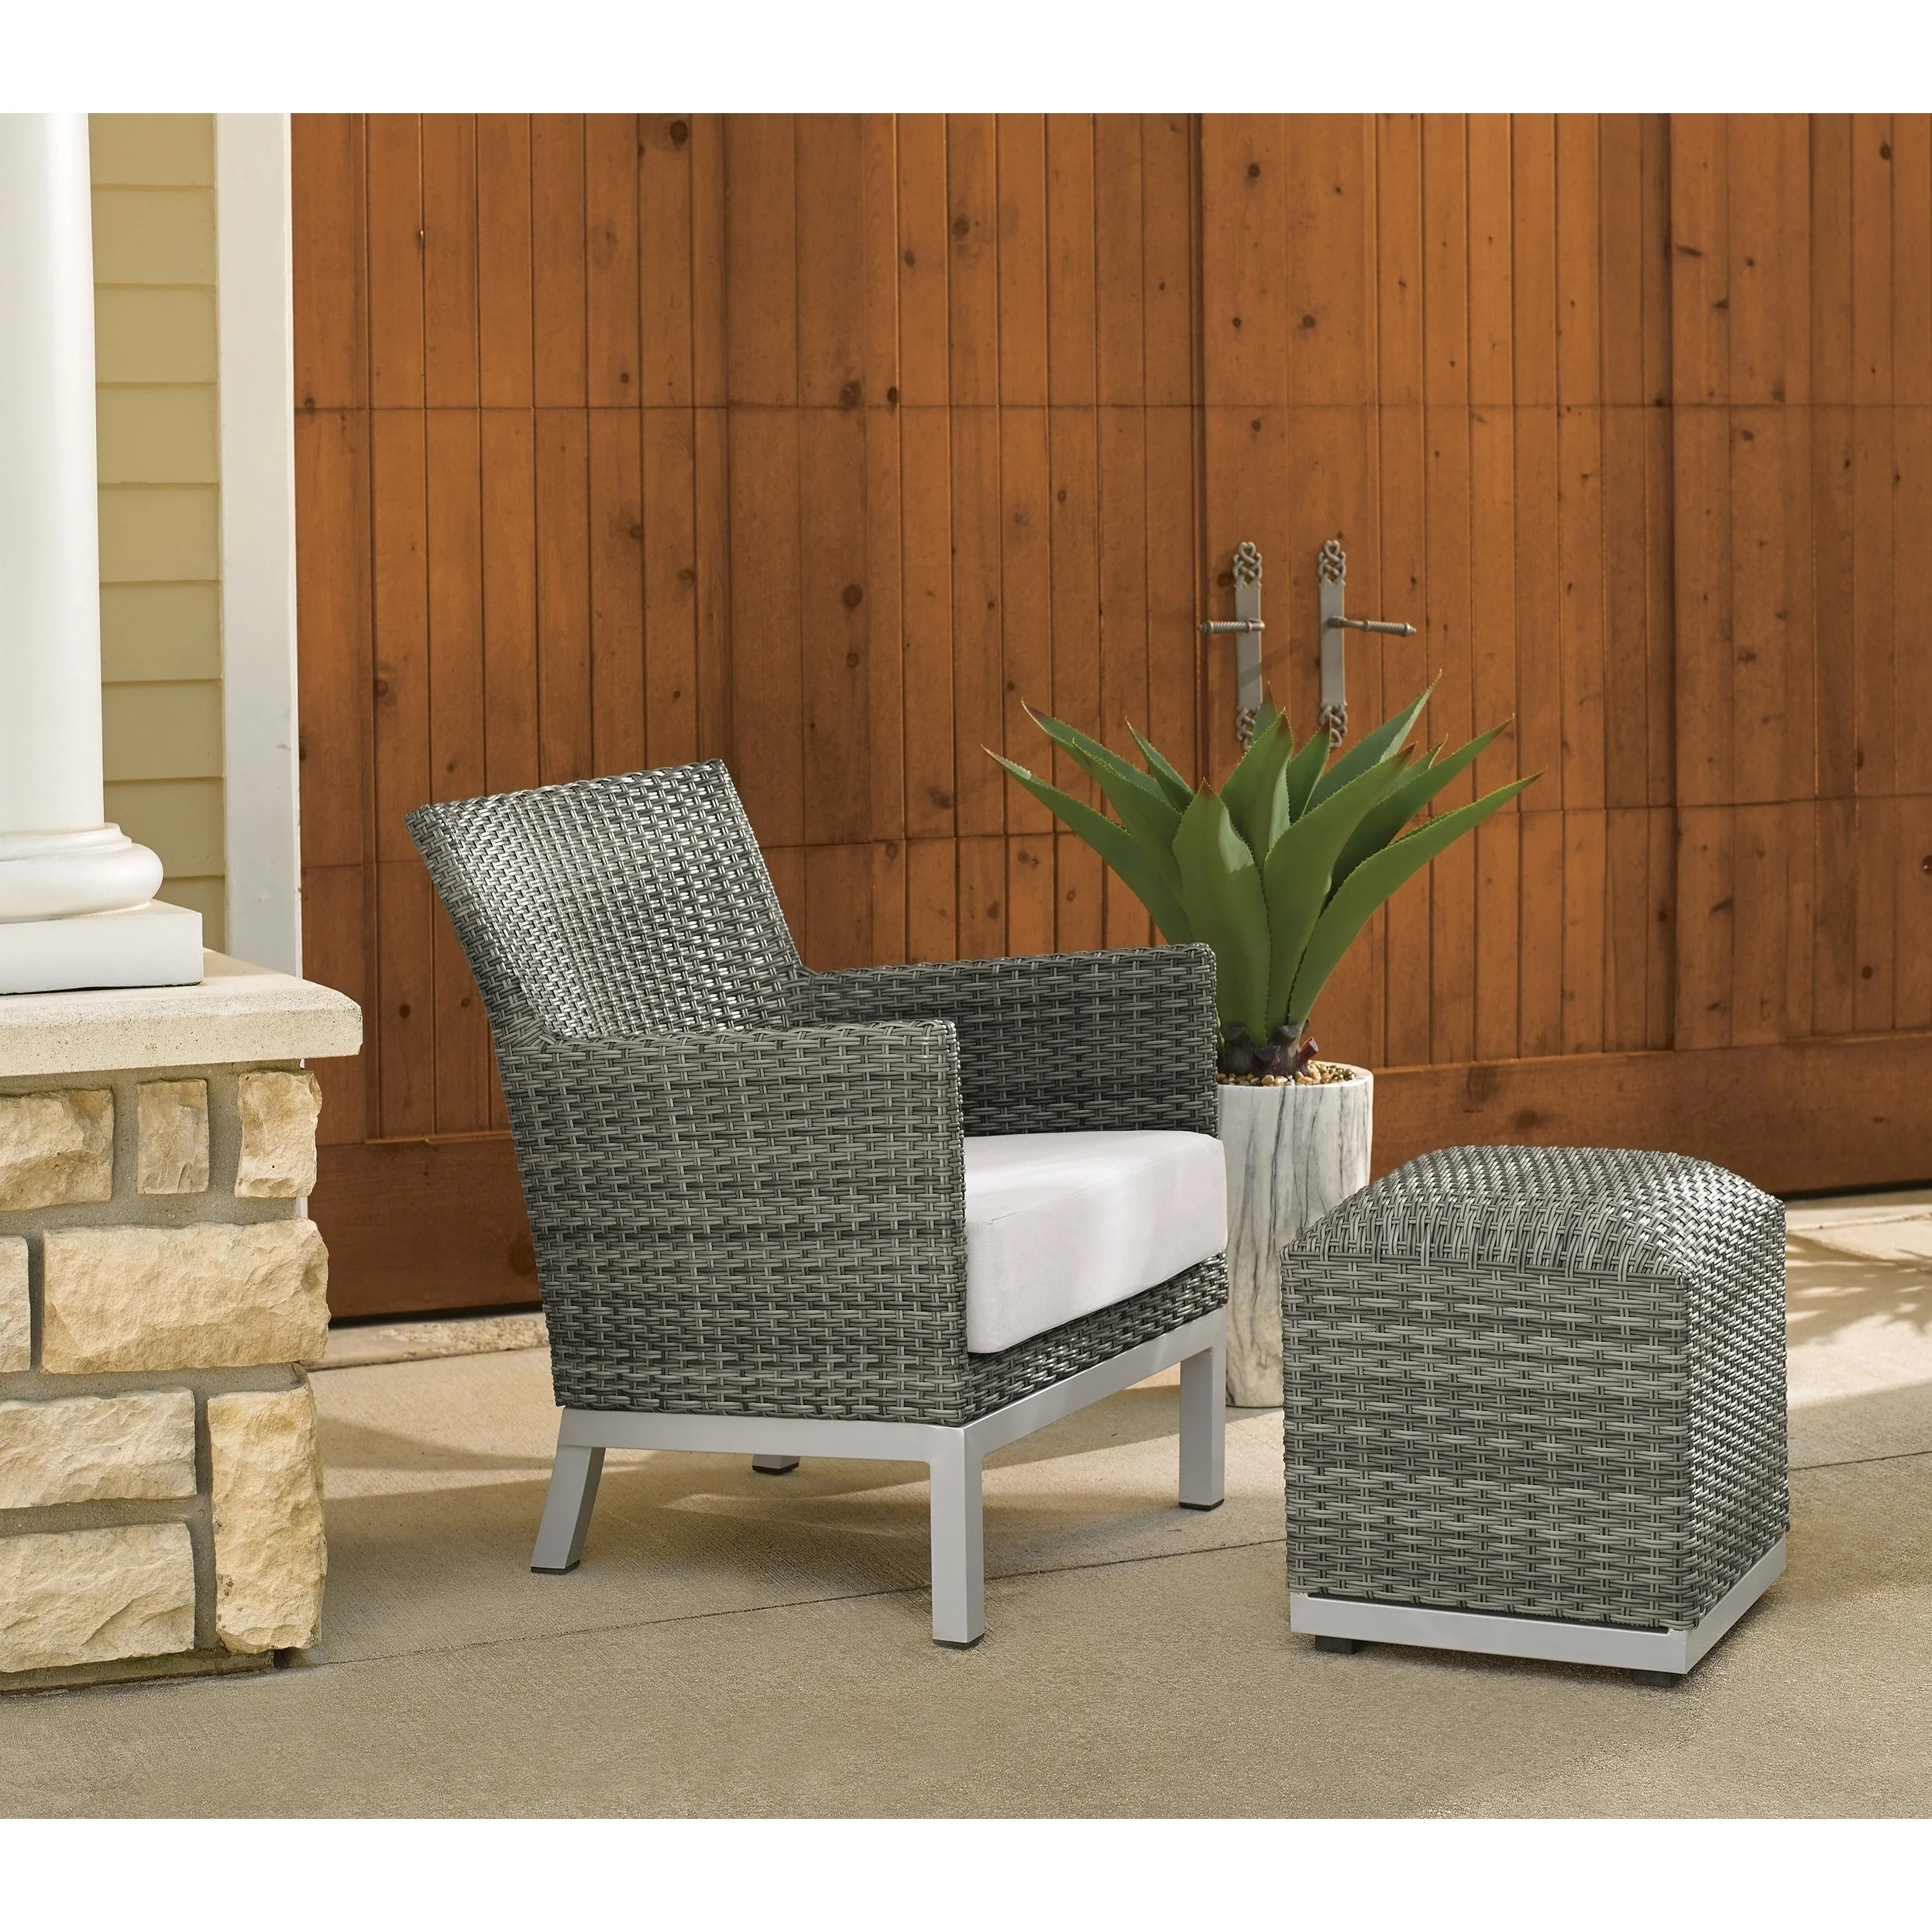 Eggshell Chair Oxford Garden Argento Resin Wicker Club Chair And Pouf Eggshell White Cushion